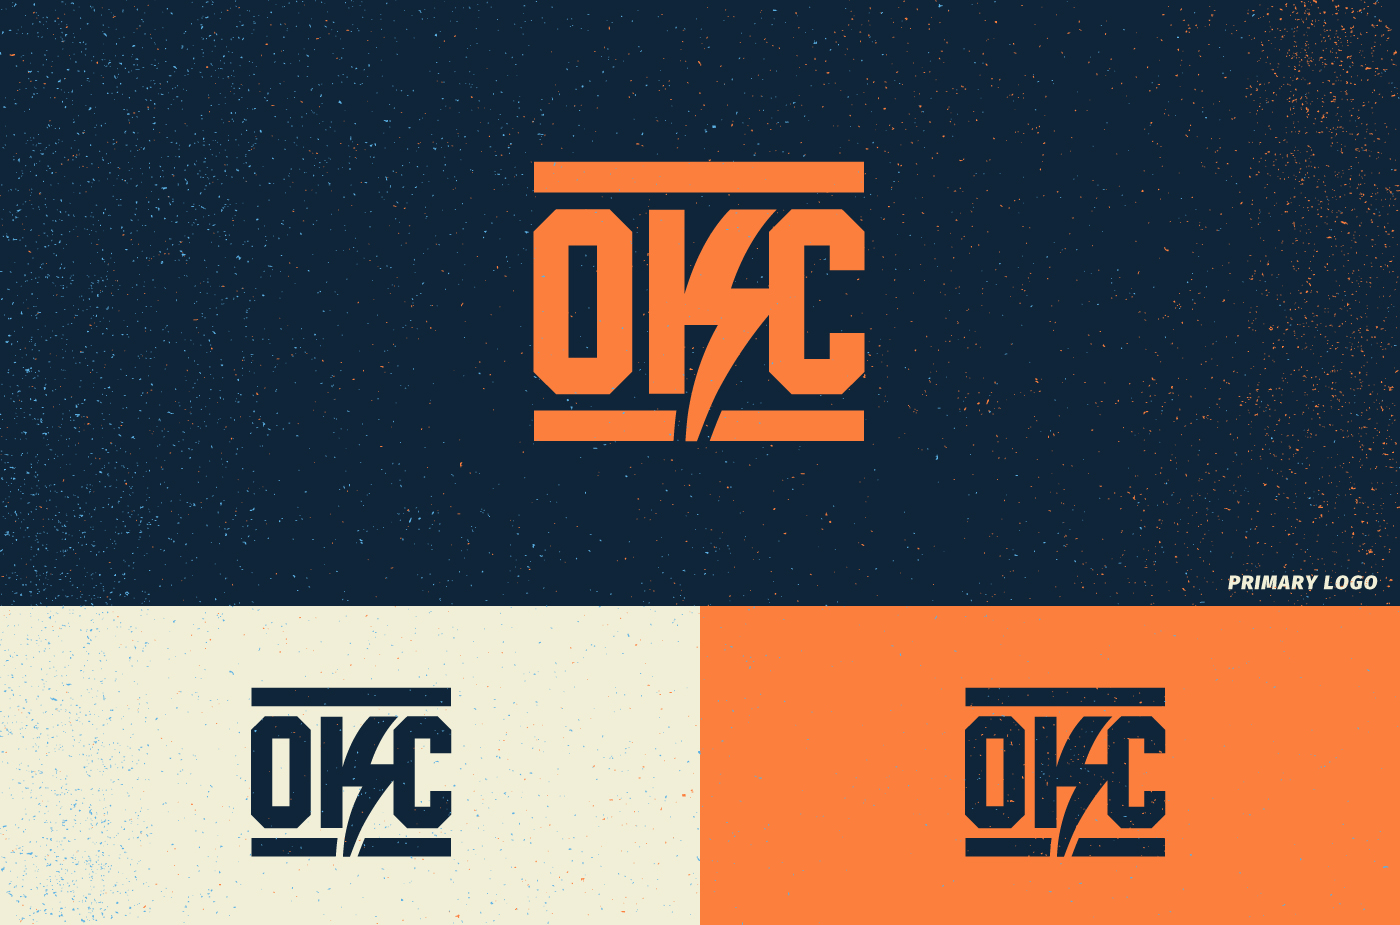 cf6678ea4 UNIFORM TEMPLATE BY BRANDON BROOKS. Save to Collection. Follow Following  Unfollow. Oklahoma City Thunder Re-Brand